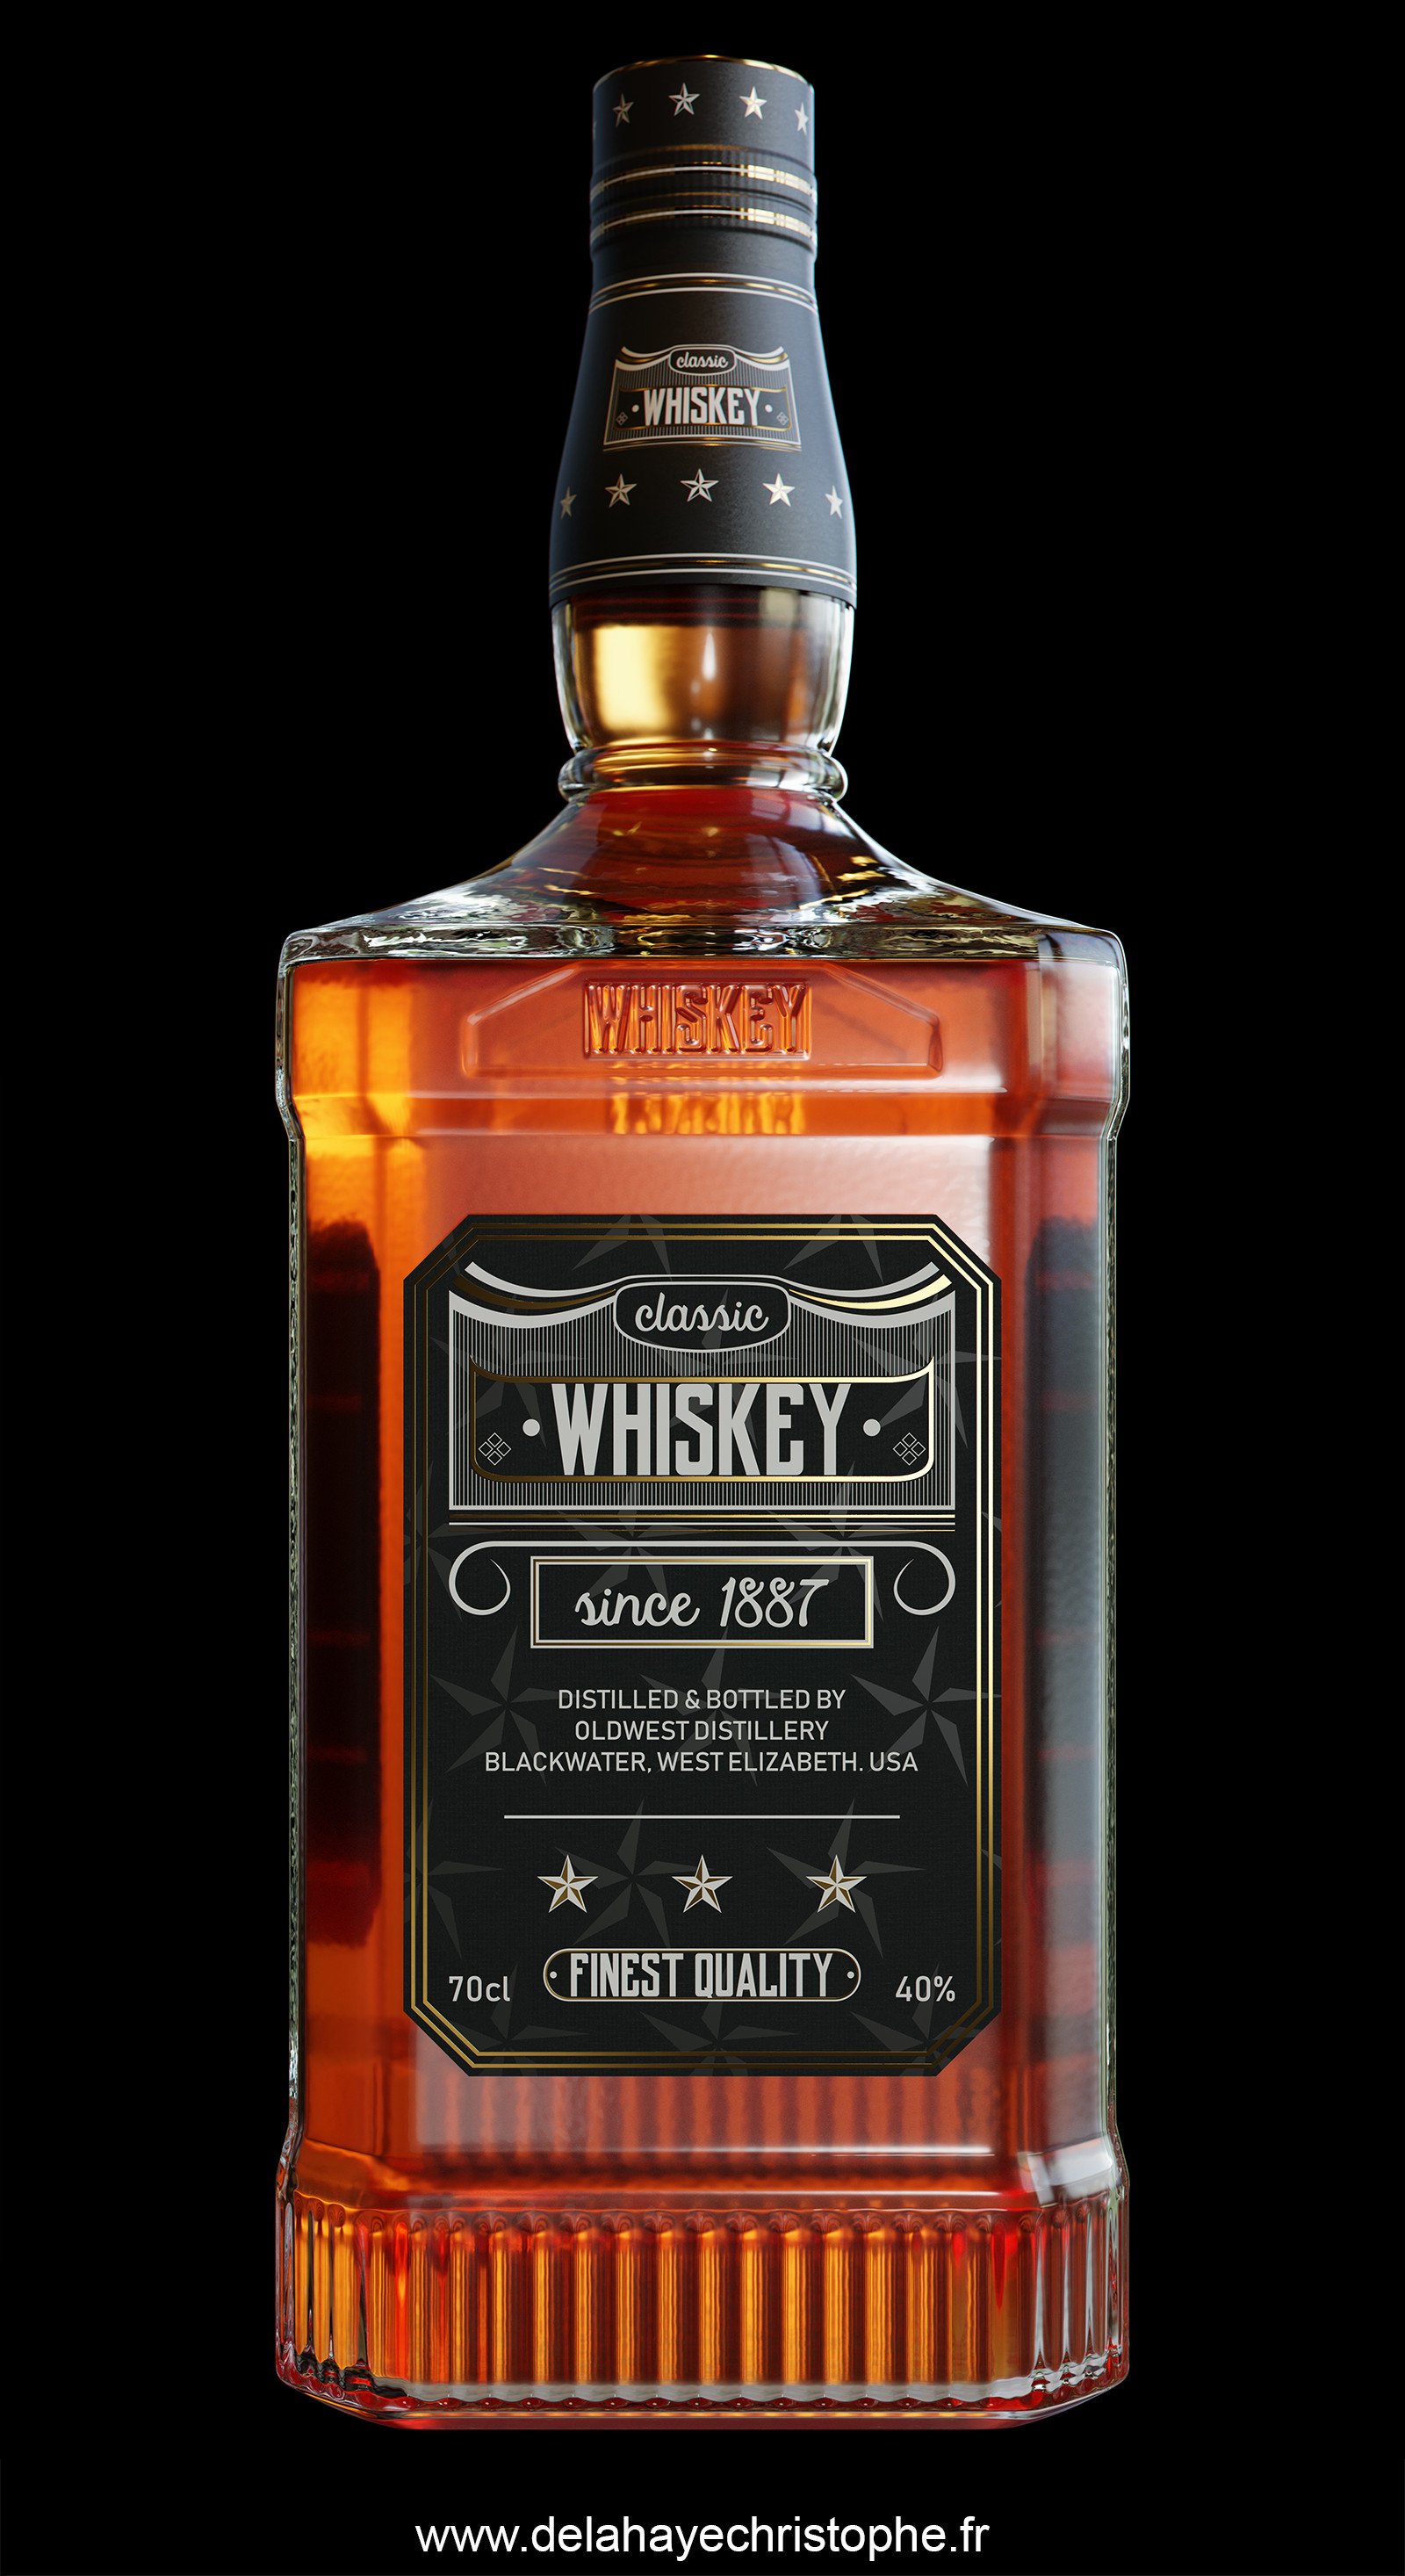 Whisky Bottle - Front view